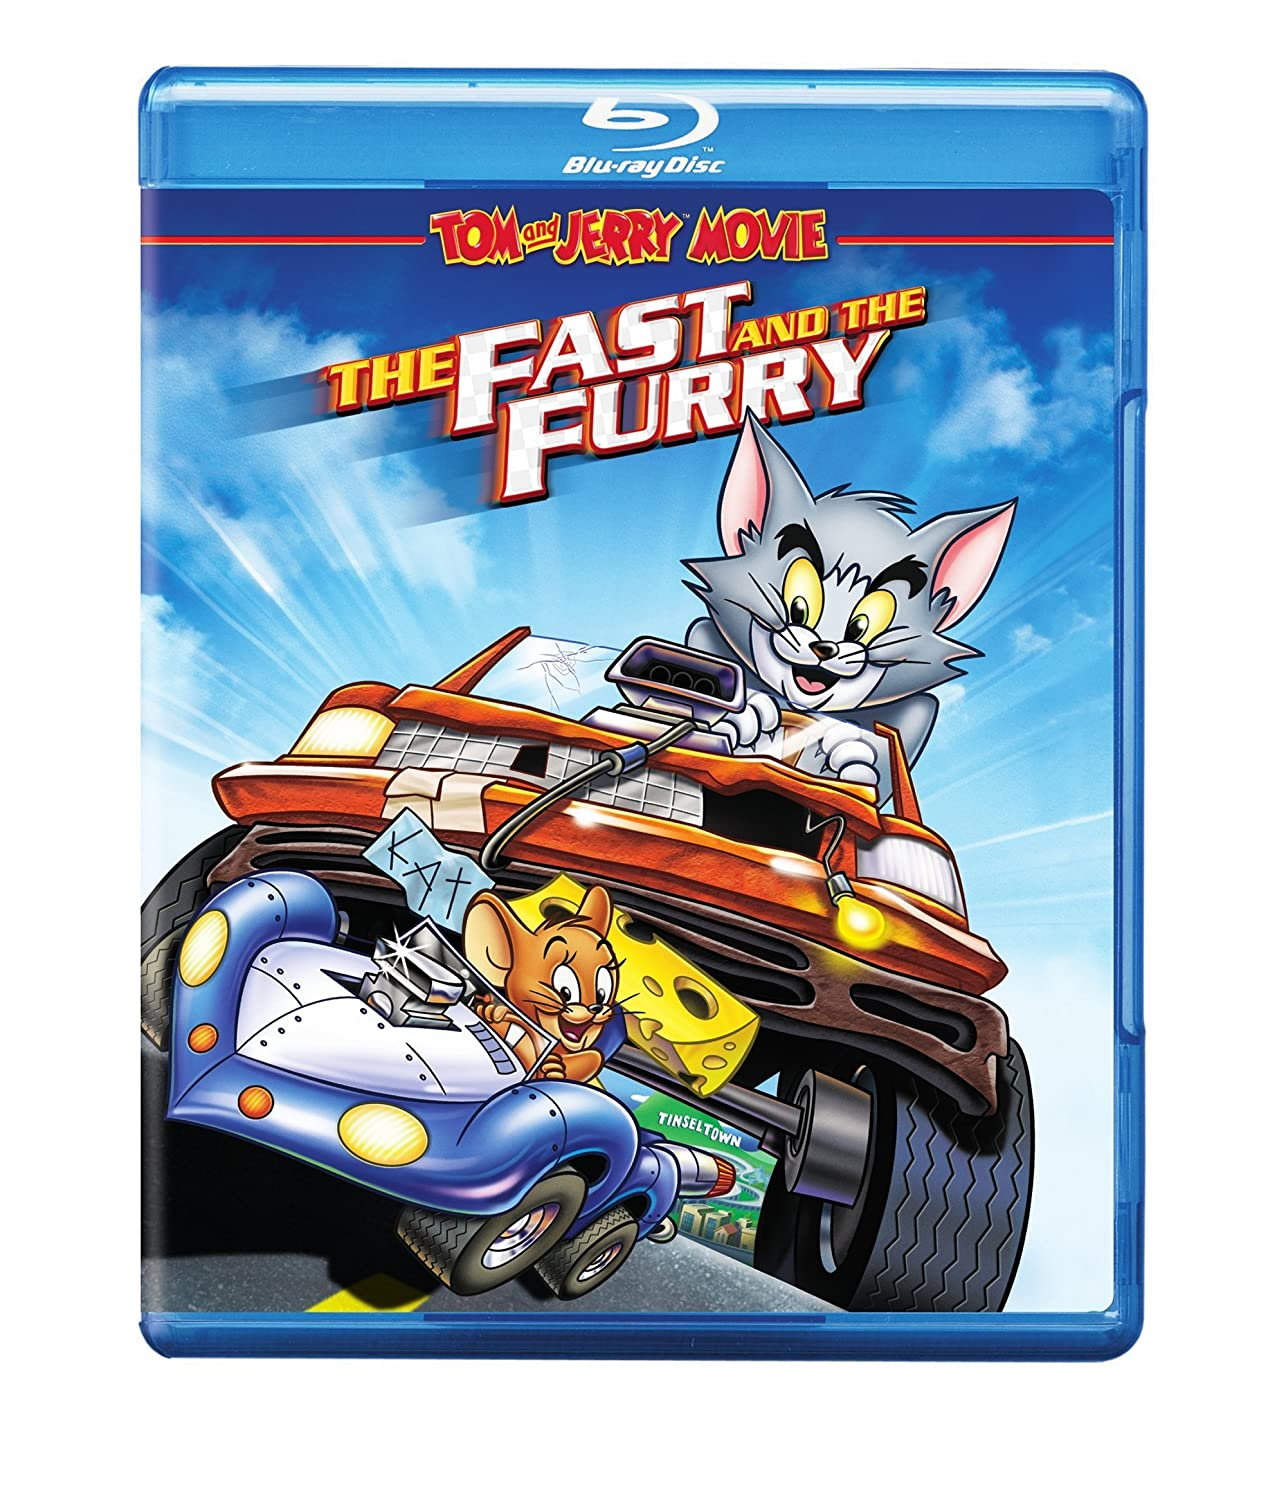 """Tom and Jerry enter an extreme car race competition called the """"Super Race"""" in order to win the grand prize of a beautiful, dream mansion! Tom and Jerry Movie The Fast & The Furry is now available on Bluray and Digital today!"""